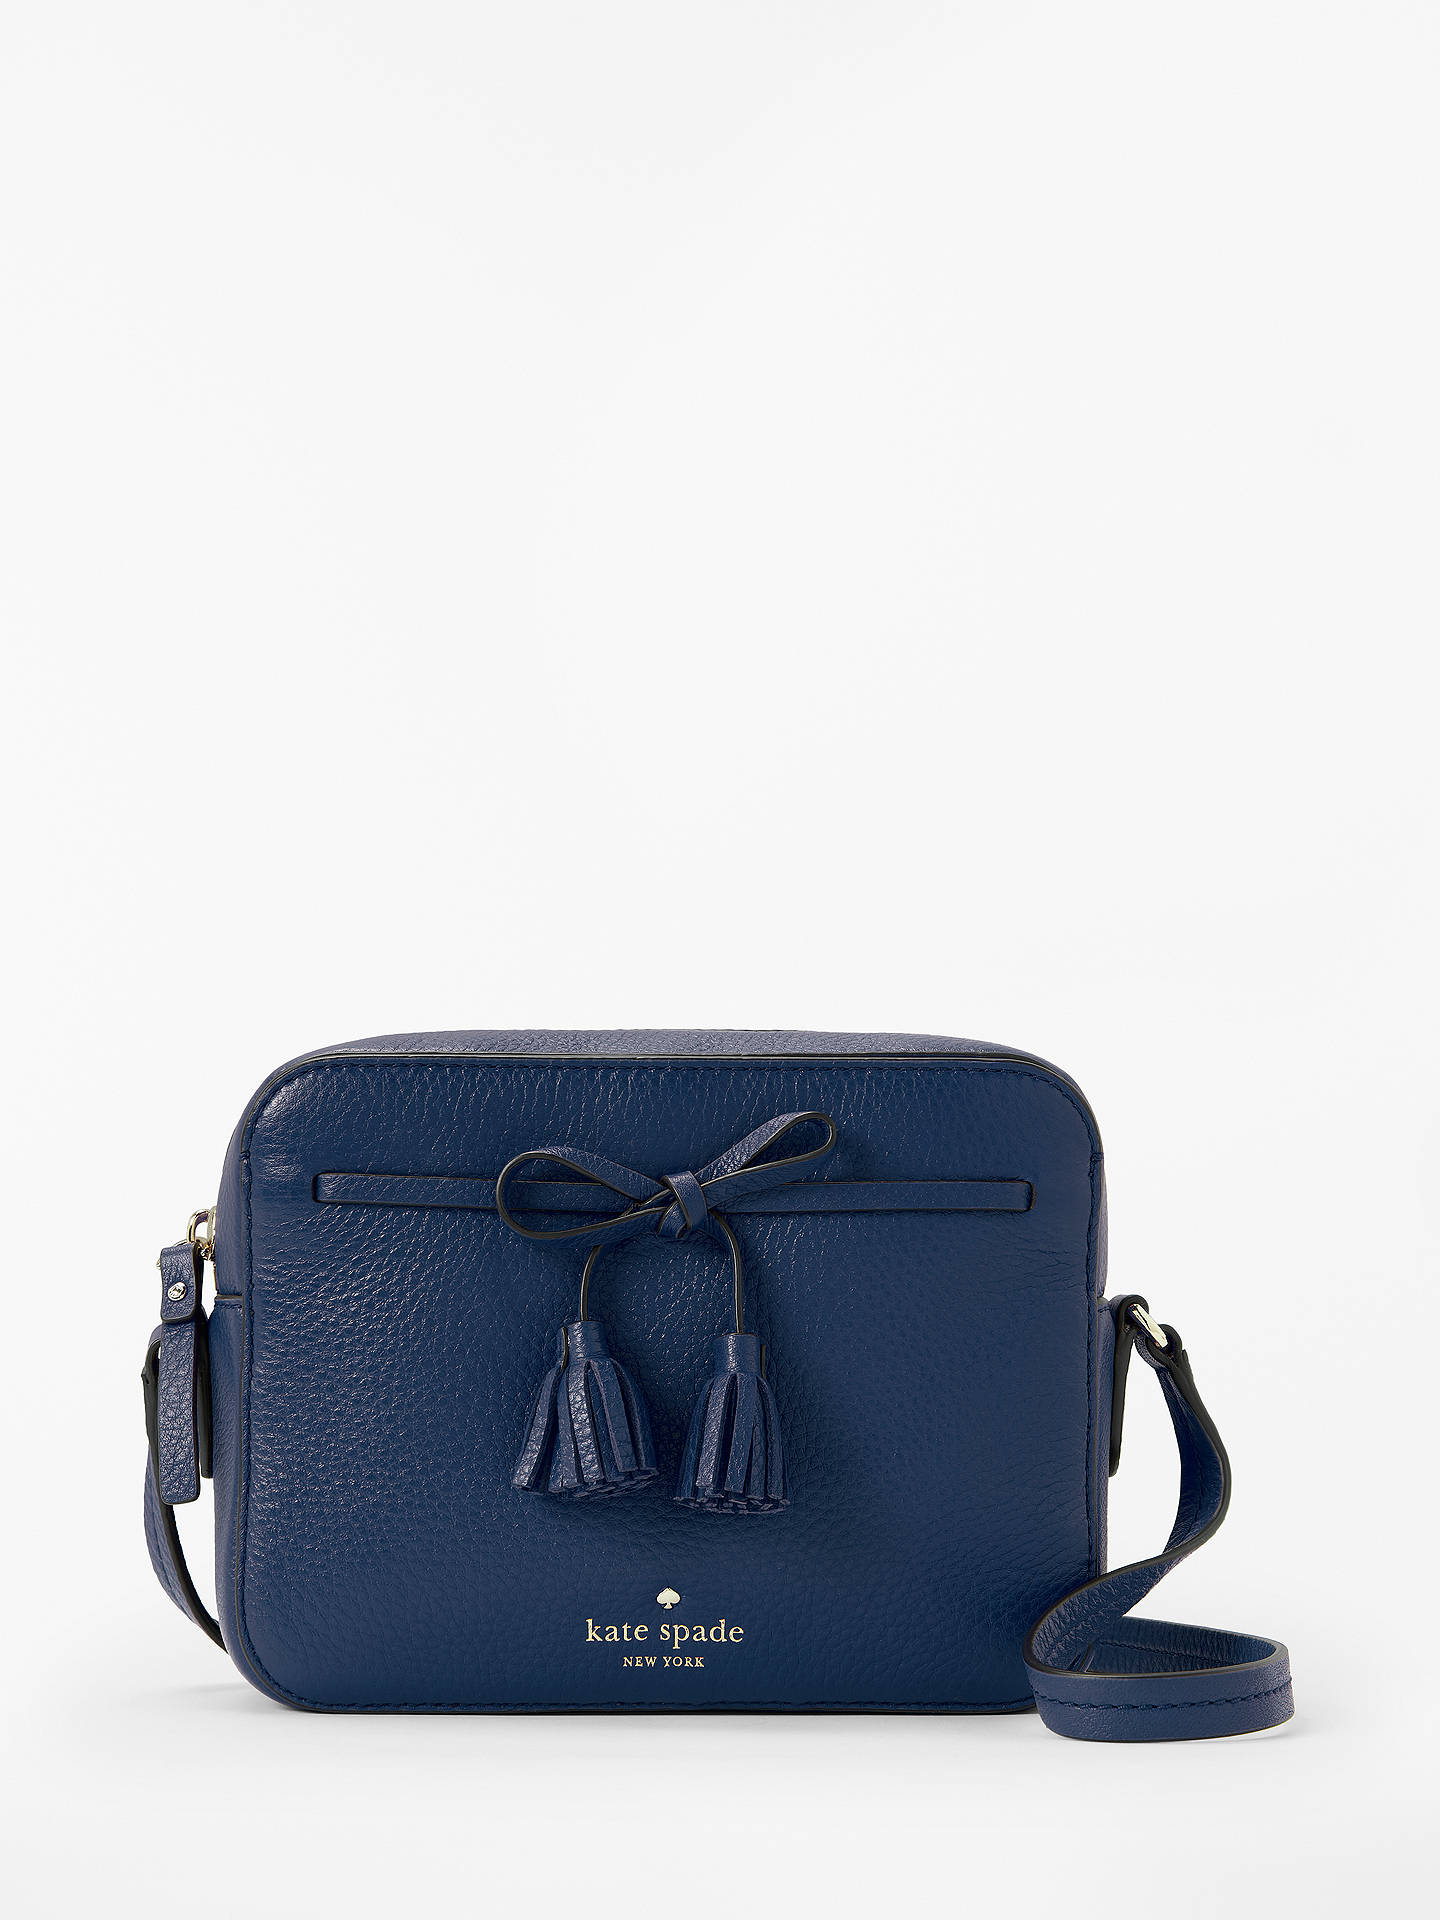 a3702d1c6a Buy kate spade new york Hayes Street Arla Leather Cross Body Bag, Blazer  Blue Online ...